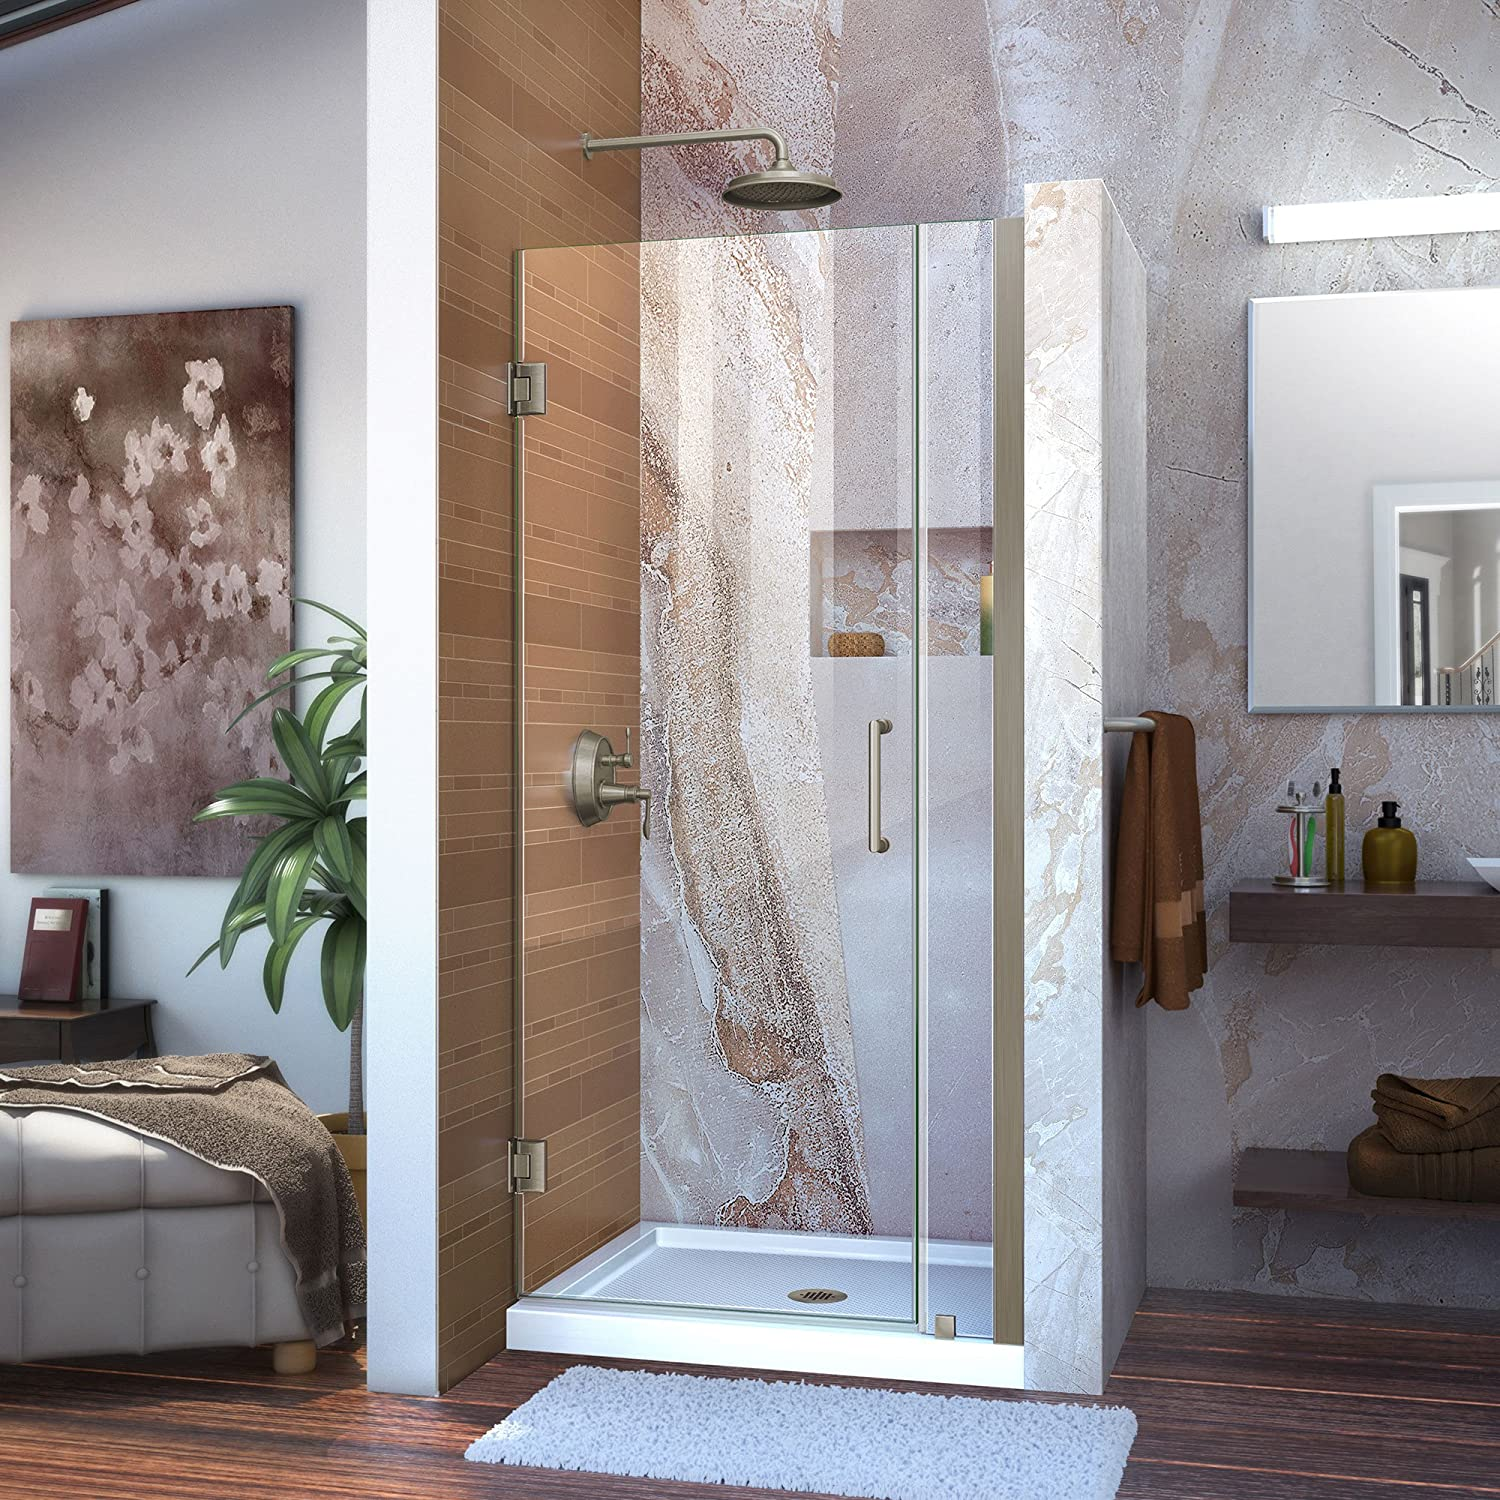 DreamLine Unidoor 32-33 in. W x 72 in. H Frameless Hinged Shower Door in Brushed Nickel, SHDR-20327210-04